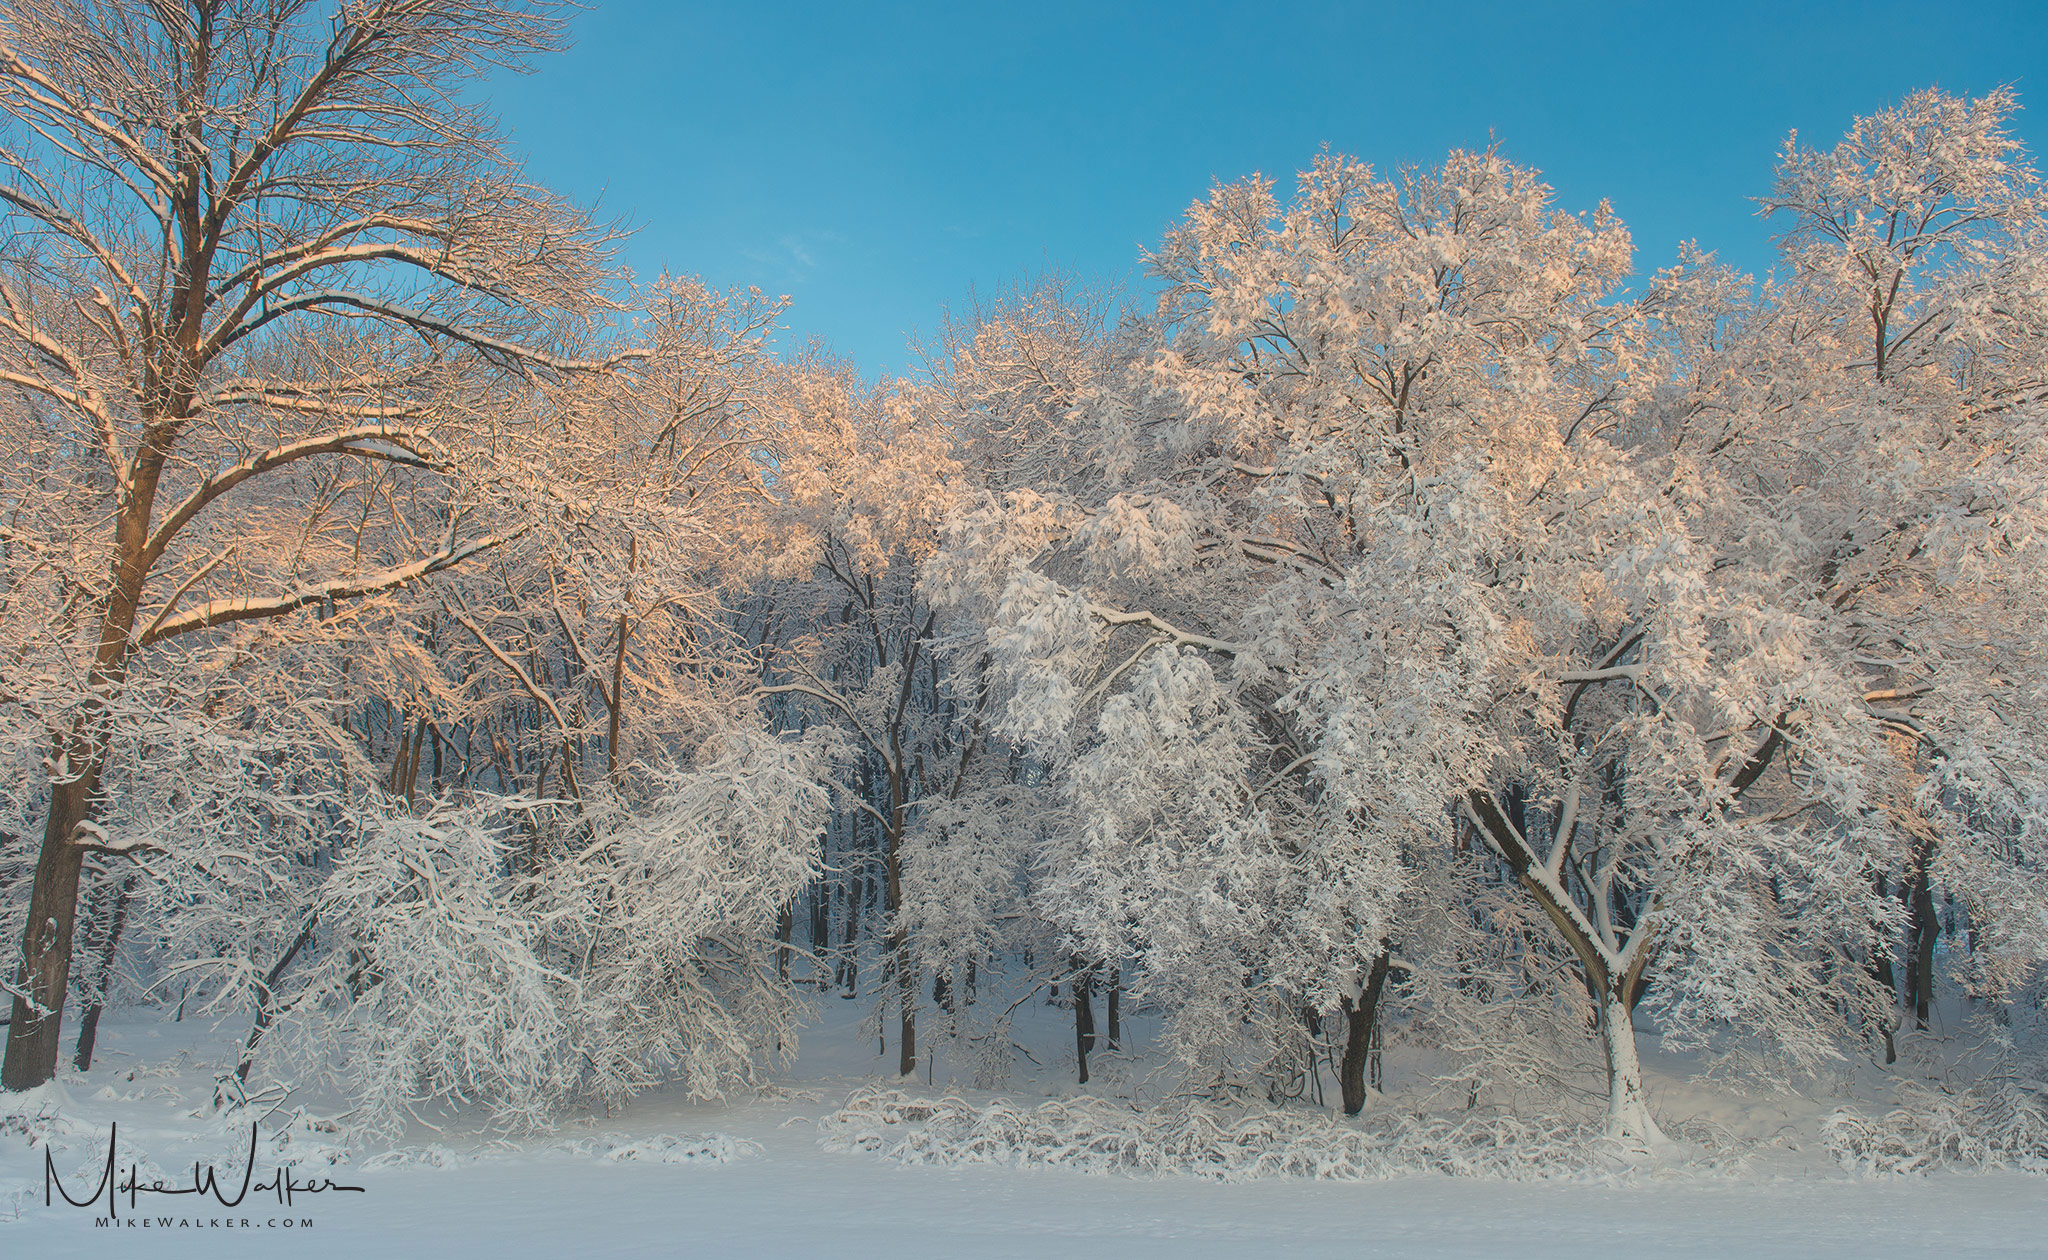 Snow and ice covering trees on a sunny morning. Nature photography by Mike Walker.